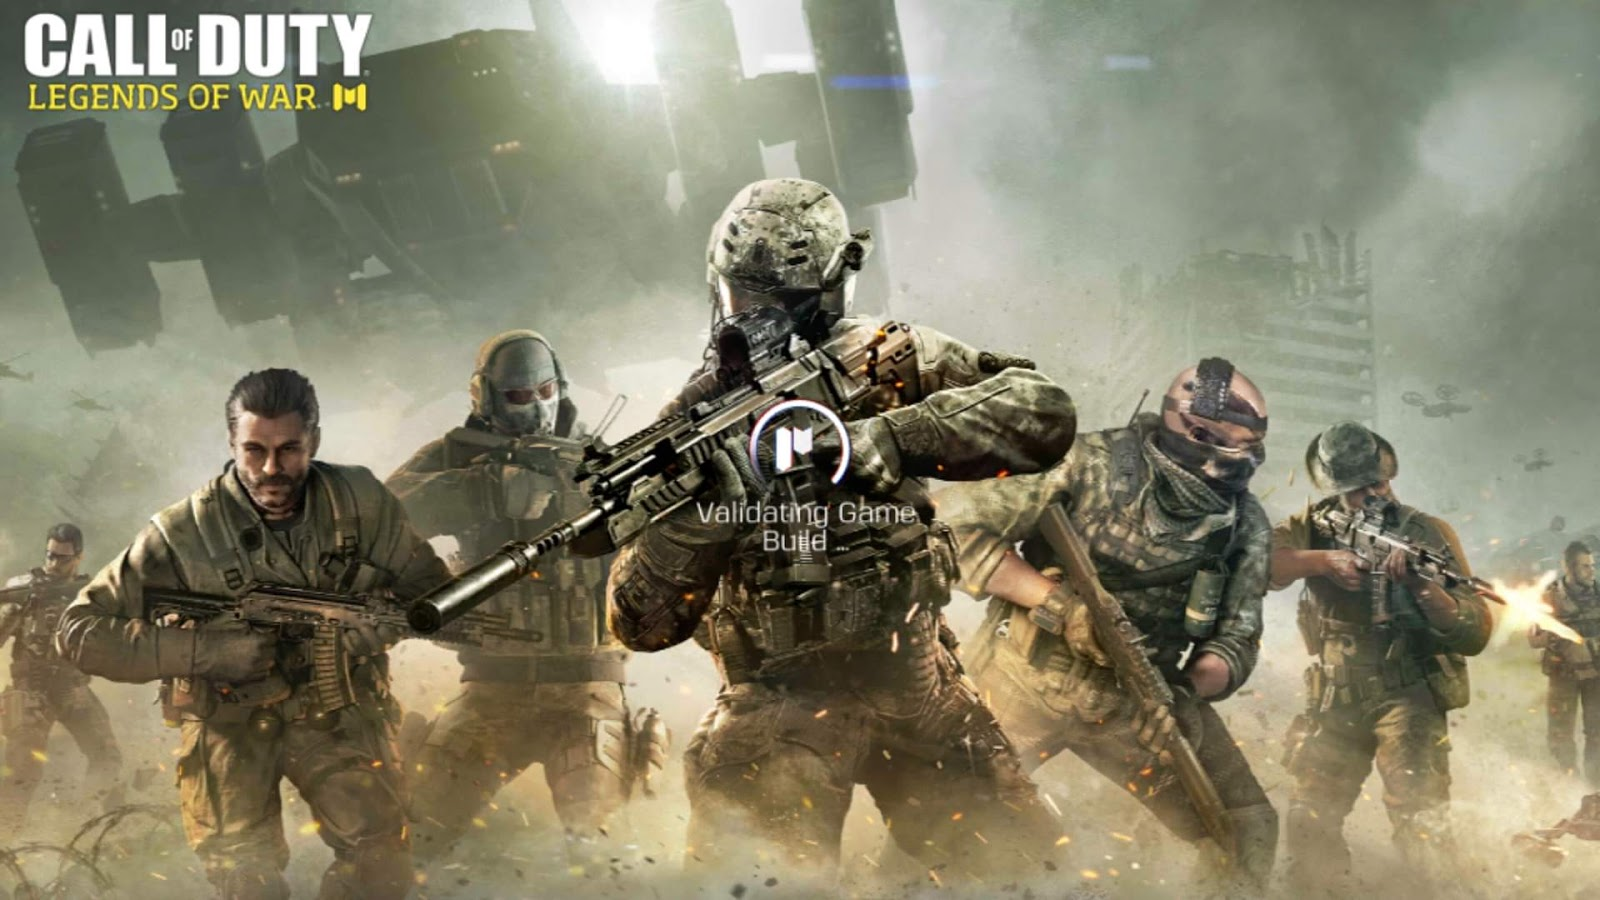 Download Call of Duty Mobile: Legends of War 1.0.0 (APK+OBB) (Update 23/02/2019)